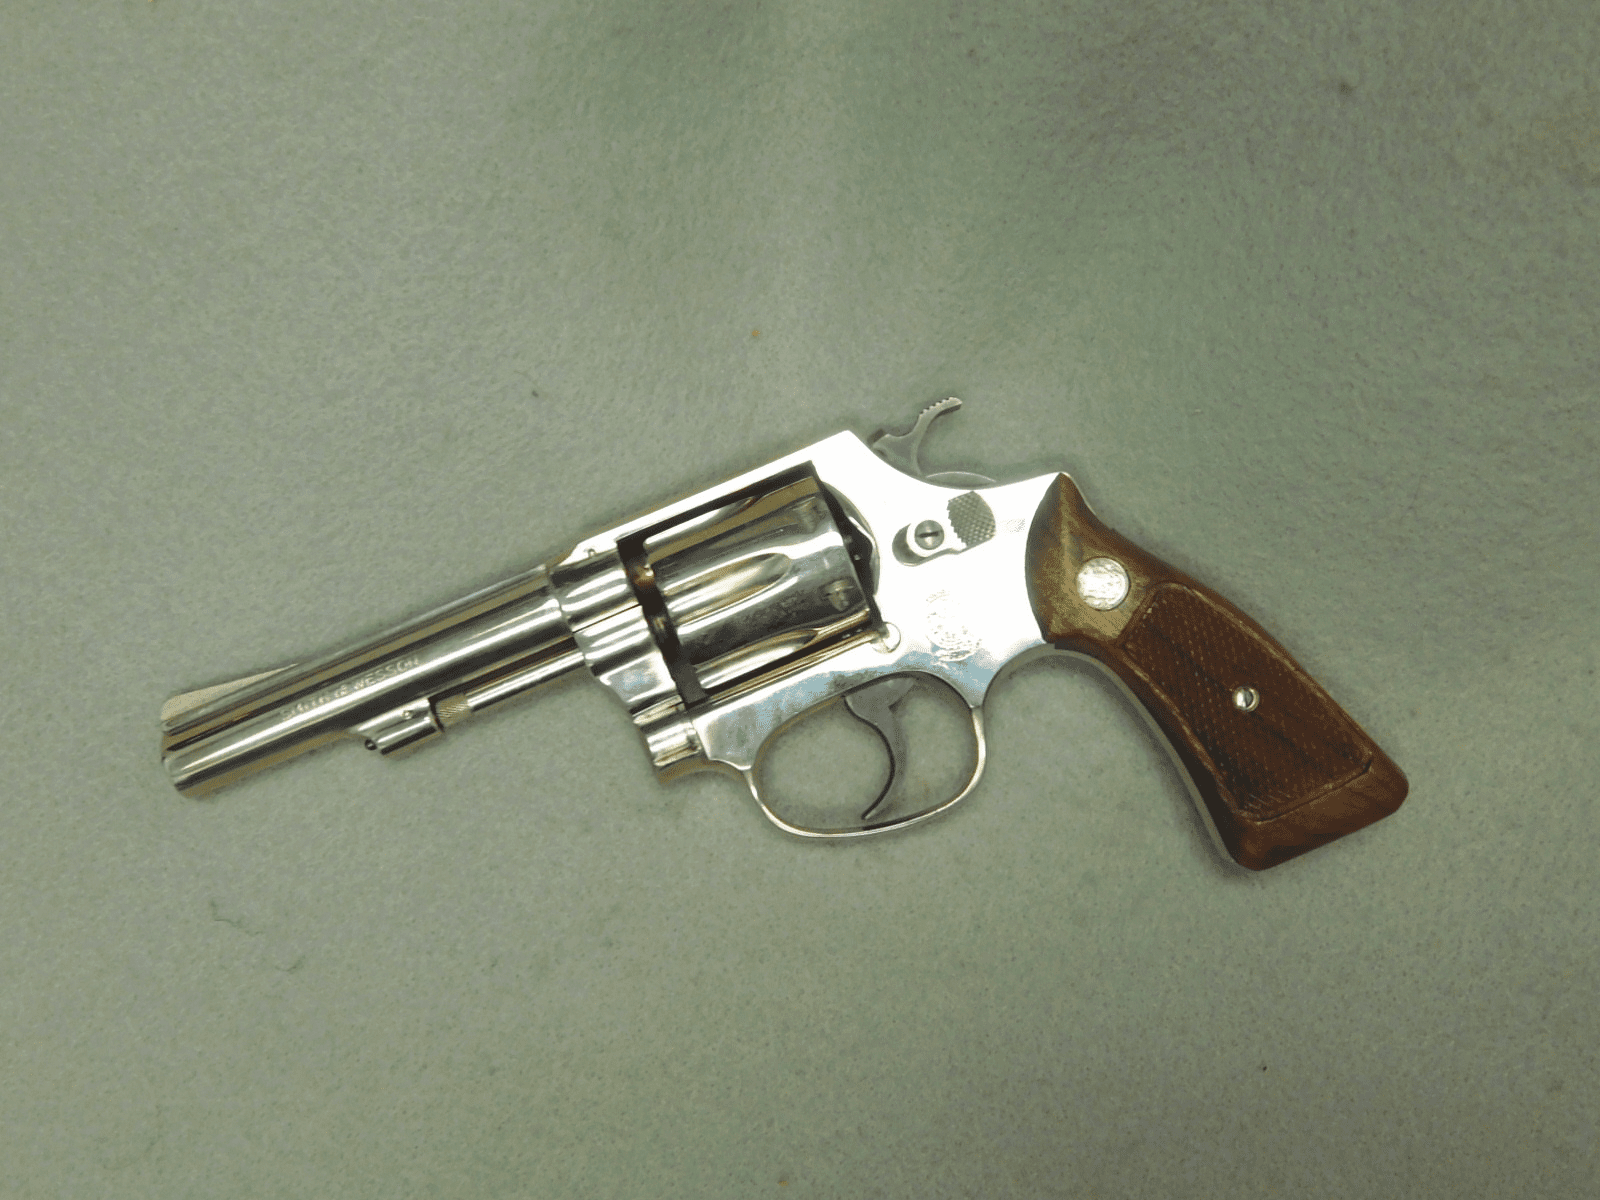 Smith & Wesson 31-1 (.32 long)